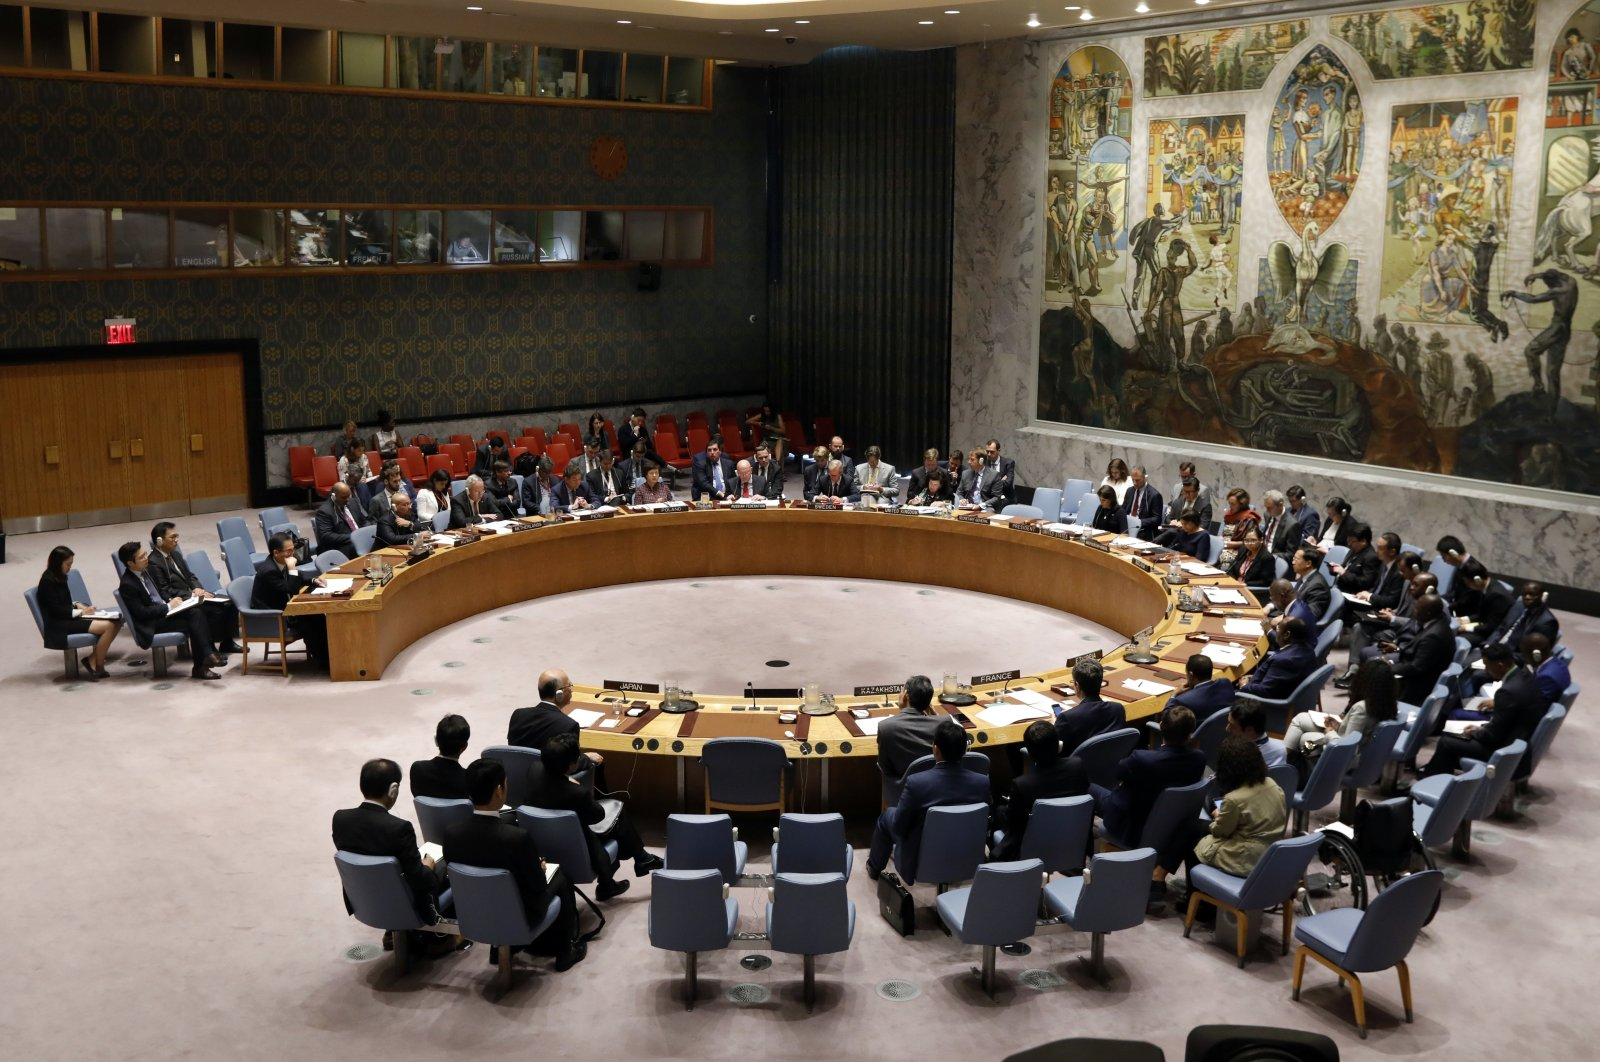 The U.N. Security Council meets at the U.N. headquarters in New York City, New York, U.S., Sept. 17, 2018. (AP Photo)